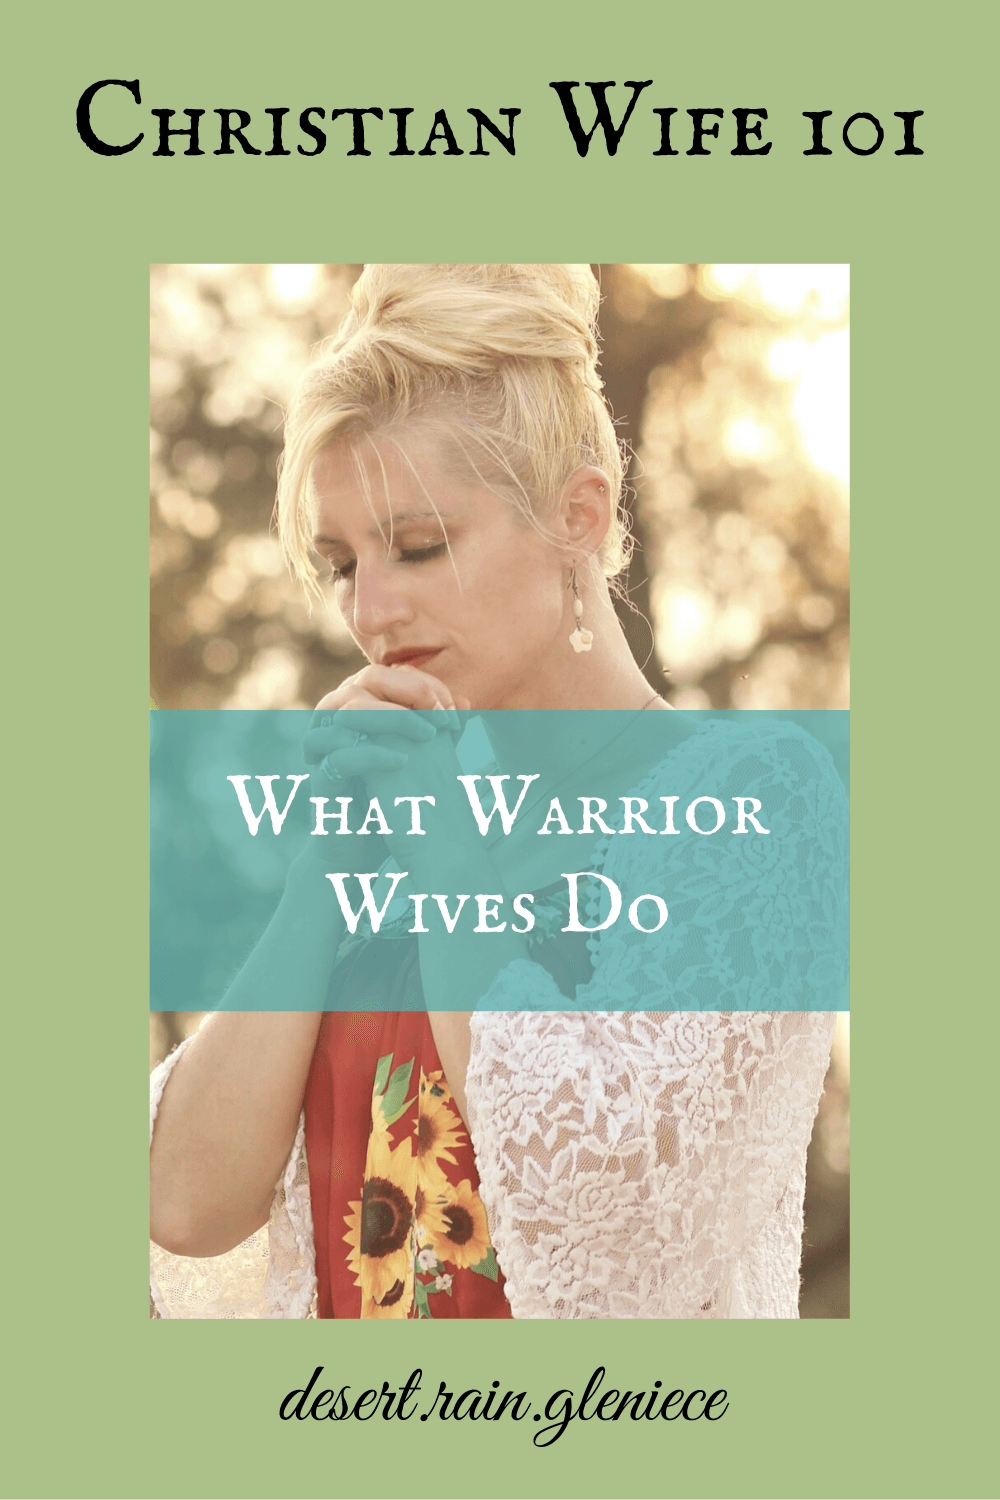 The devil hates our marriages and seeks to destroy them. But God has given us warrior wives a powerful and victorious weapon. #christianwife101, #spiritualwarfare, #prayer, #forgiveness